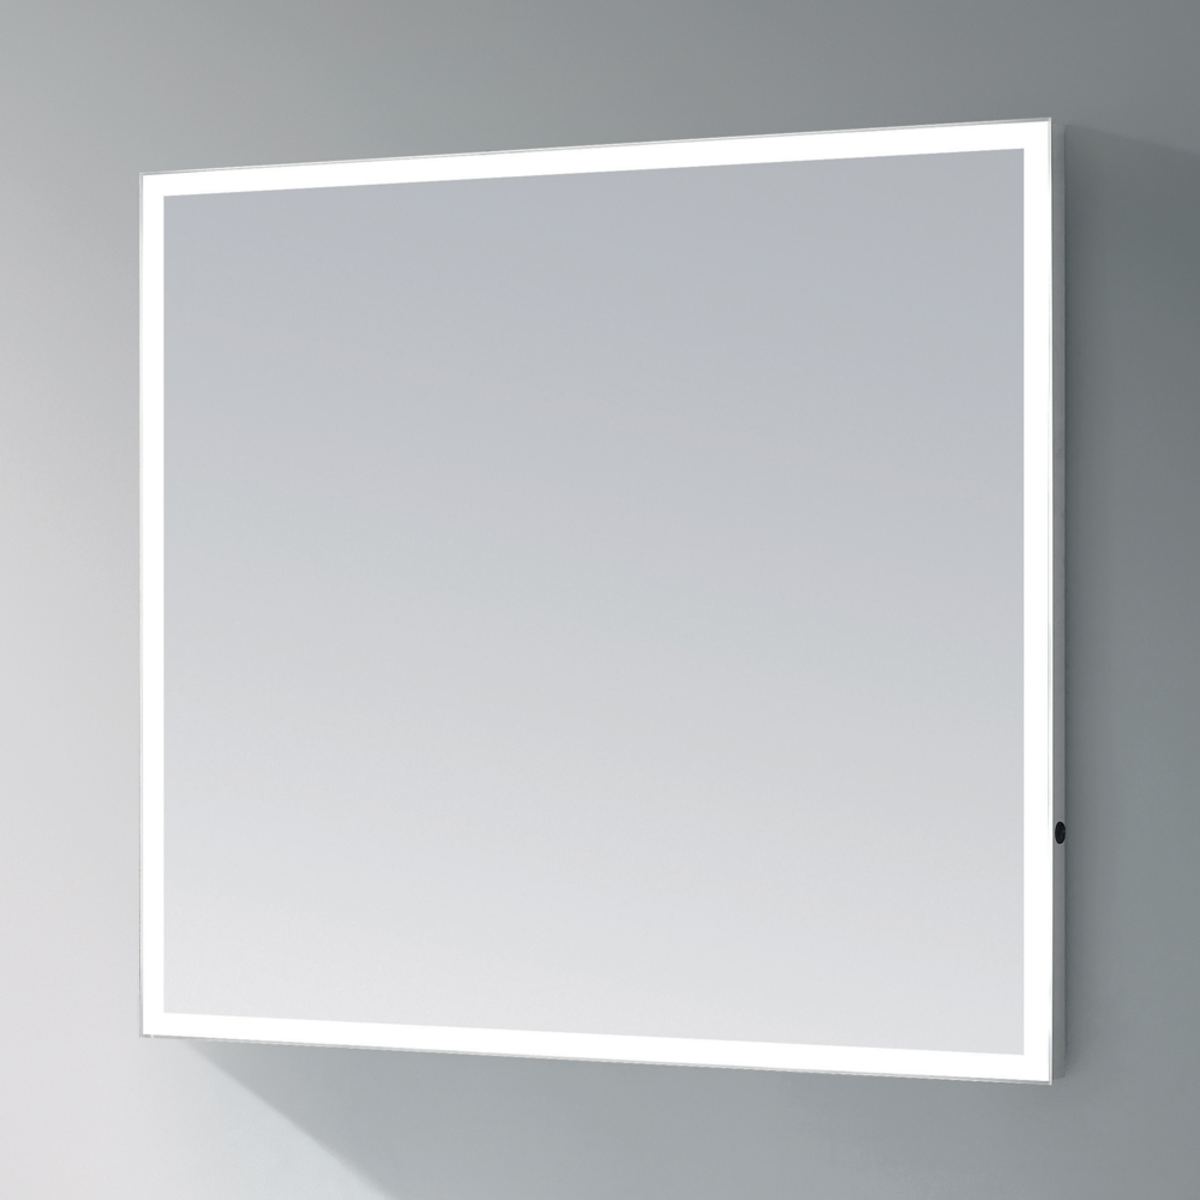 https://static.rorix.nl/image/product/overig/1200x1200/526a21197dda4.png/saniclass-edge-spiegel-140x70cm-met-led-verlichting-rechthoek-aluminium-sw27998.png